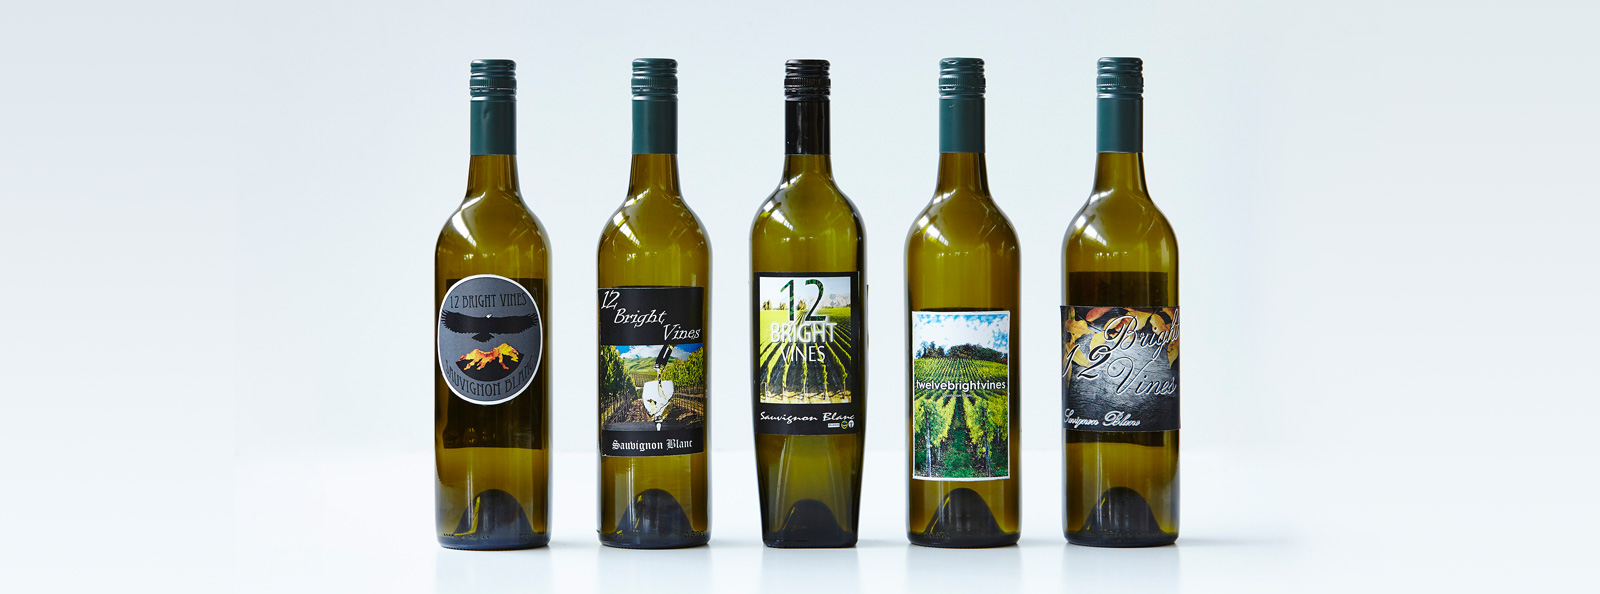 Logo designs for our VCAL wine 12 Bright Vines - Visual Communication